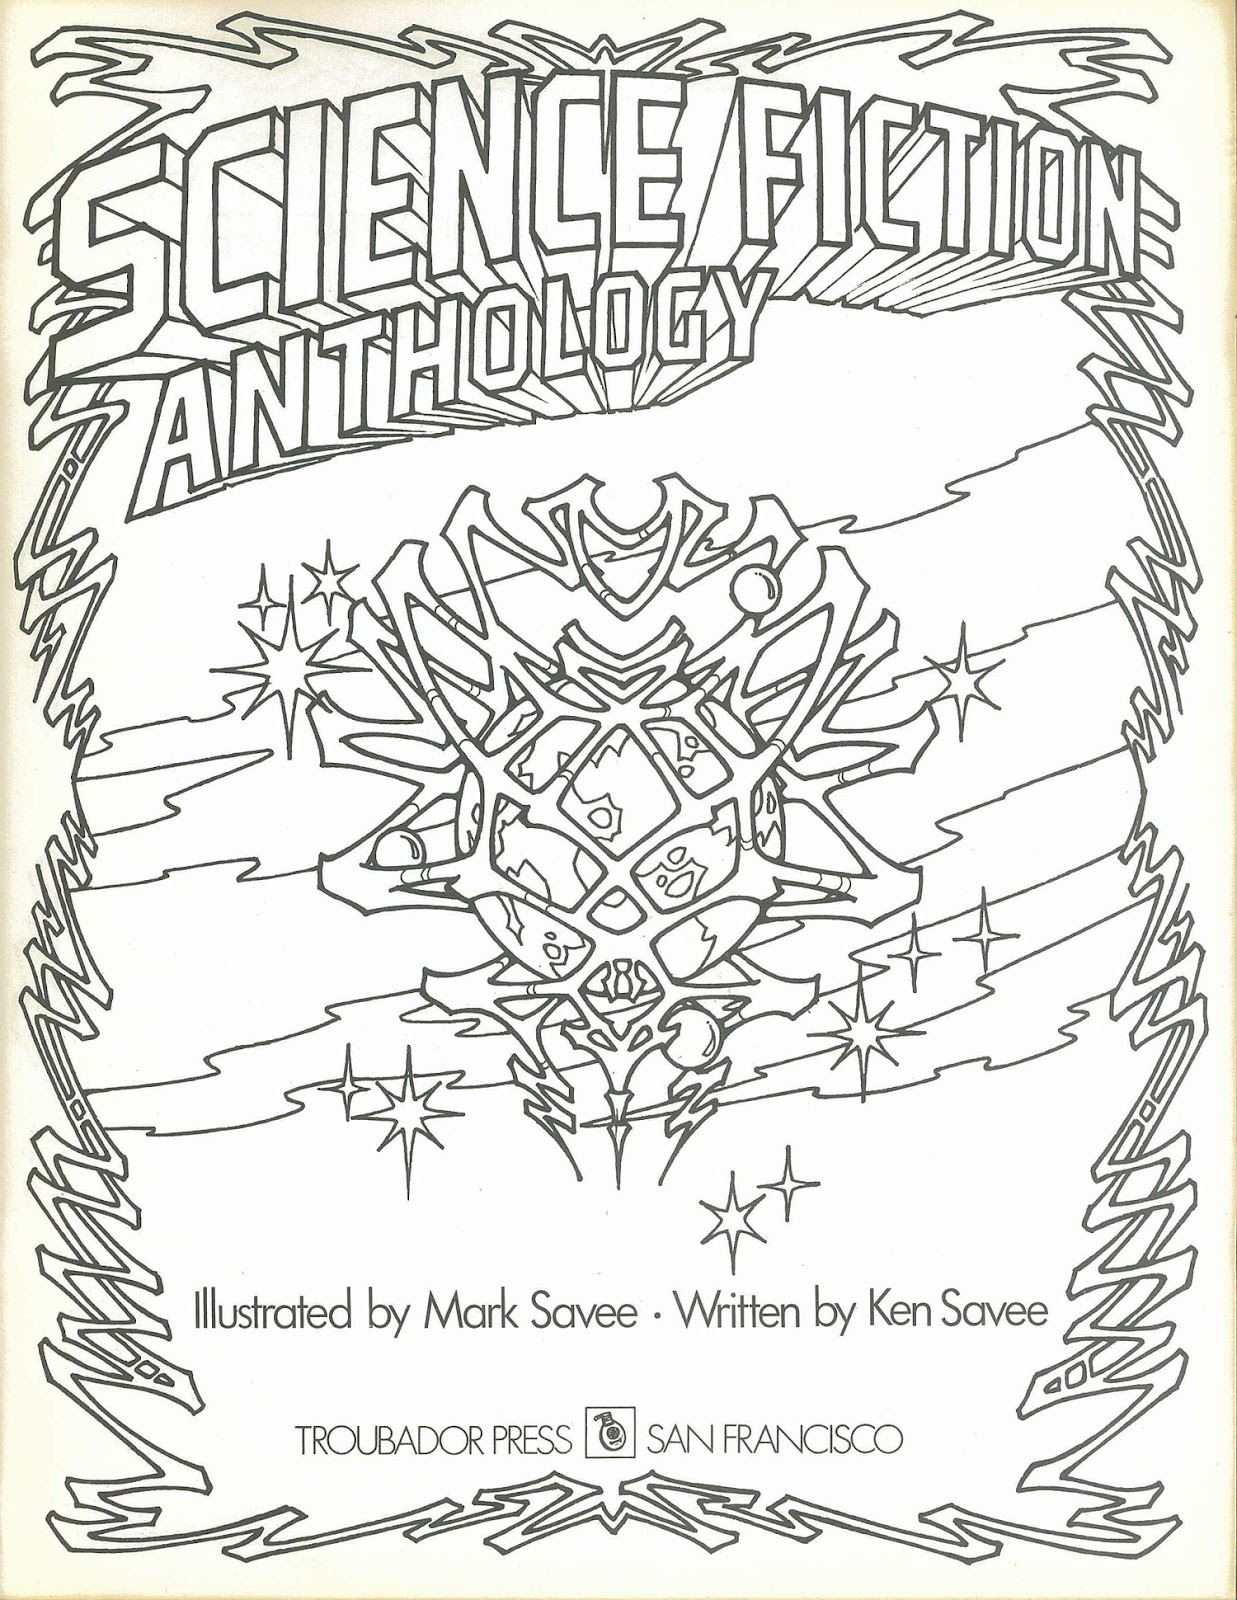 inside jeff overturf  39 s head  quot science fiction anthology quot  coloring book 1 of 2 Space Theme Coloring Books  Sci Fi Coloring Book